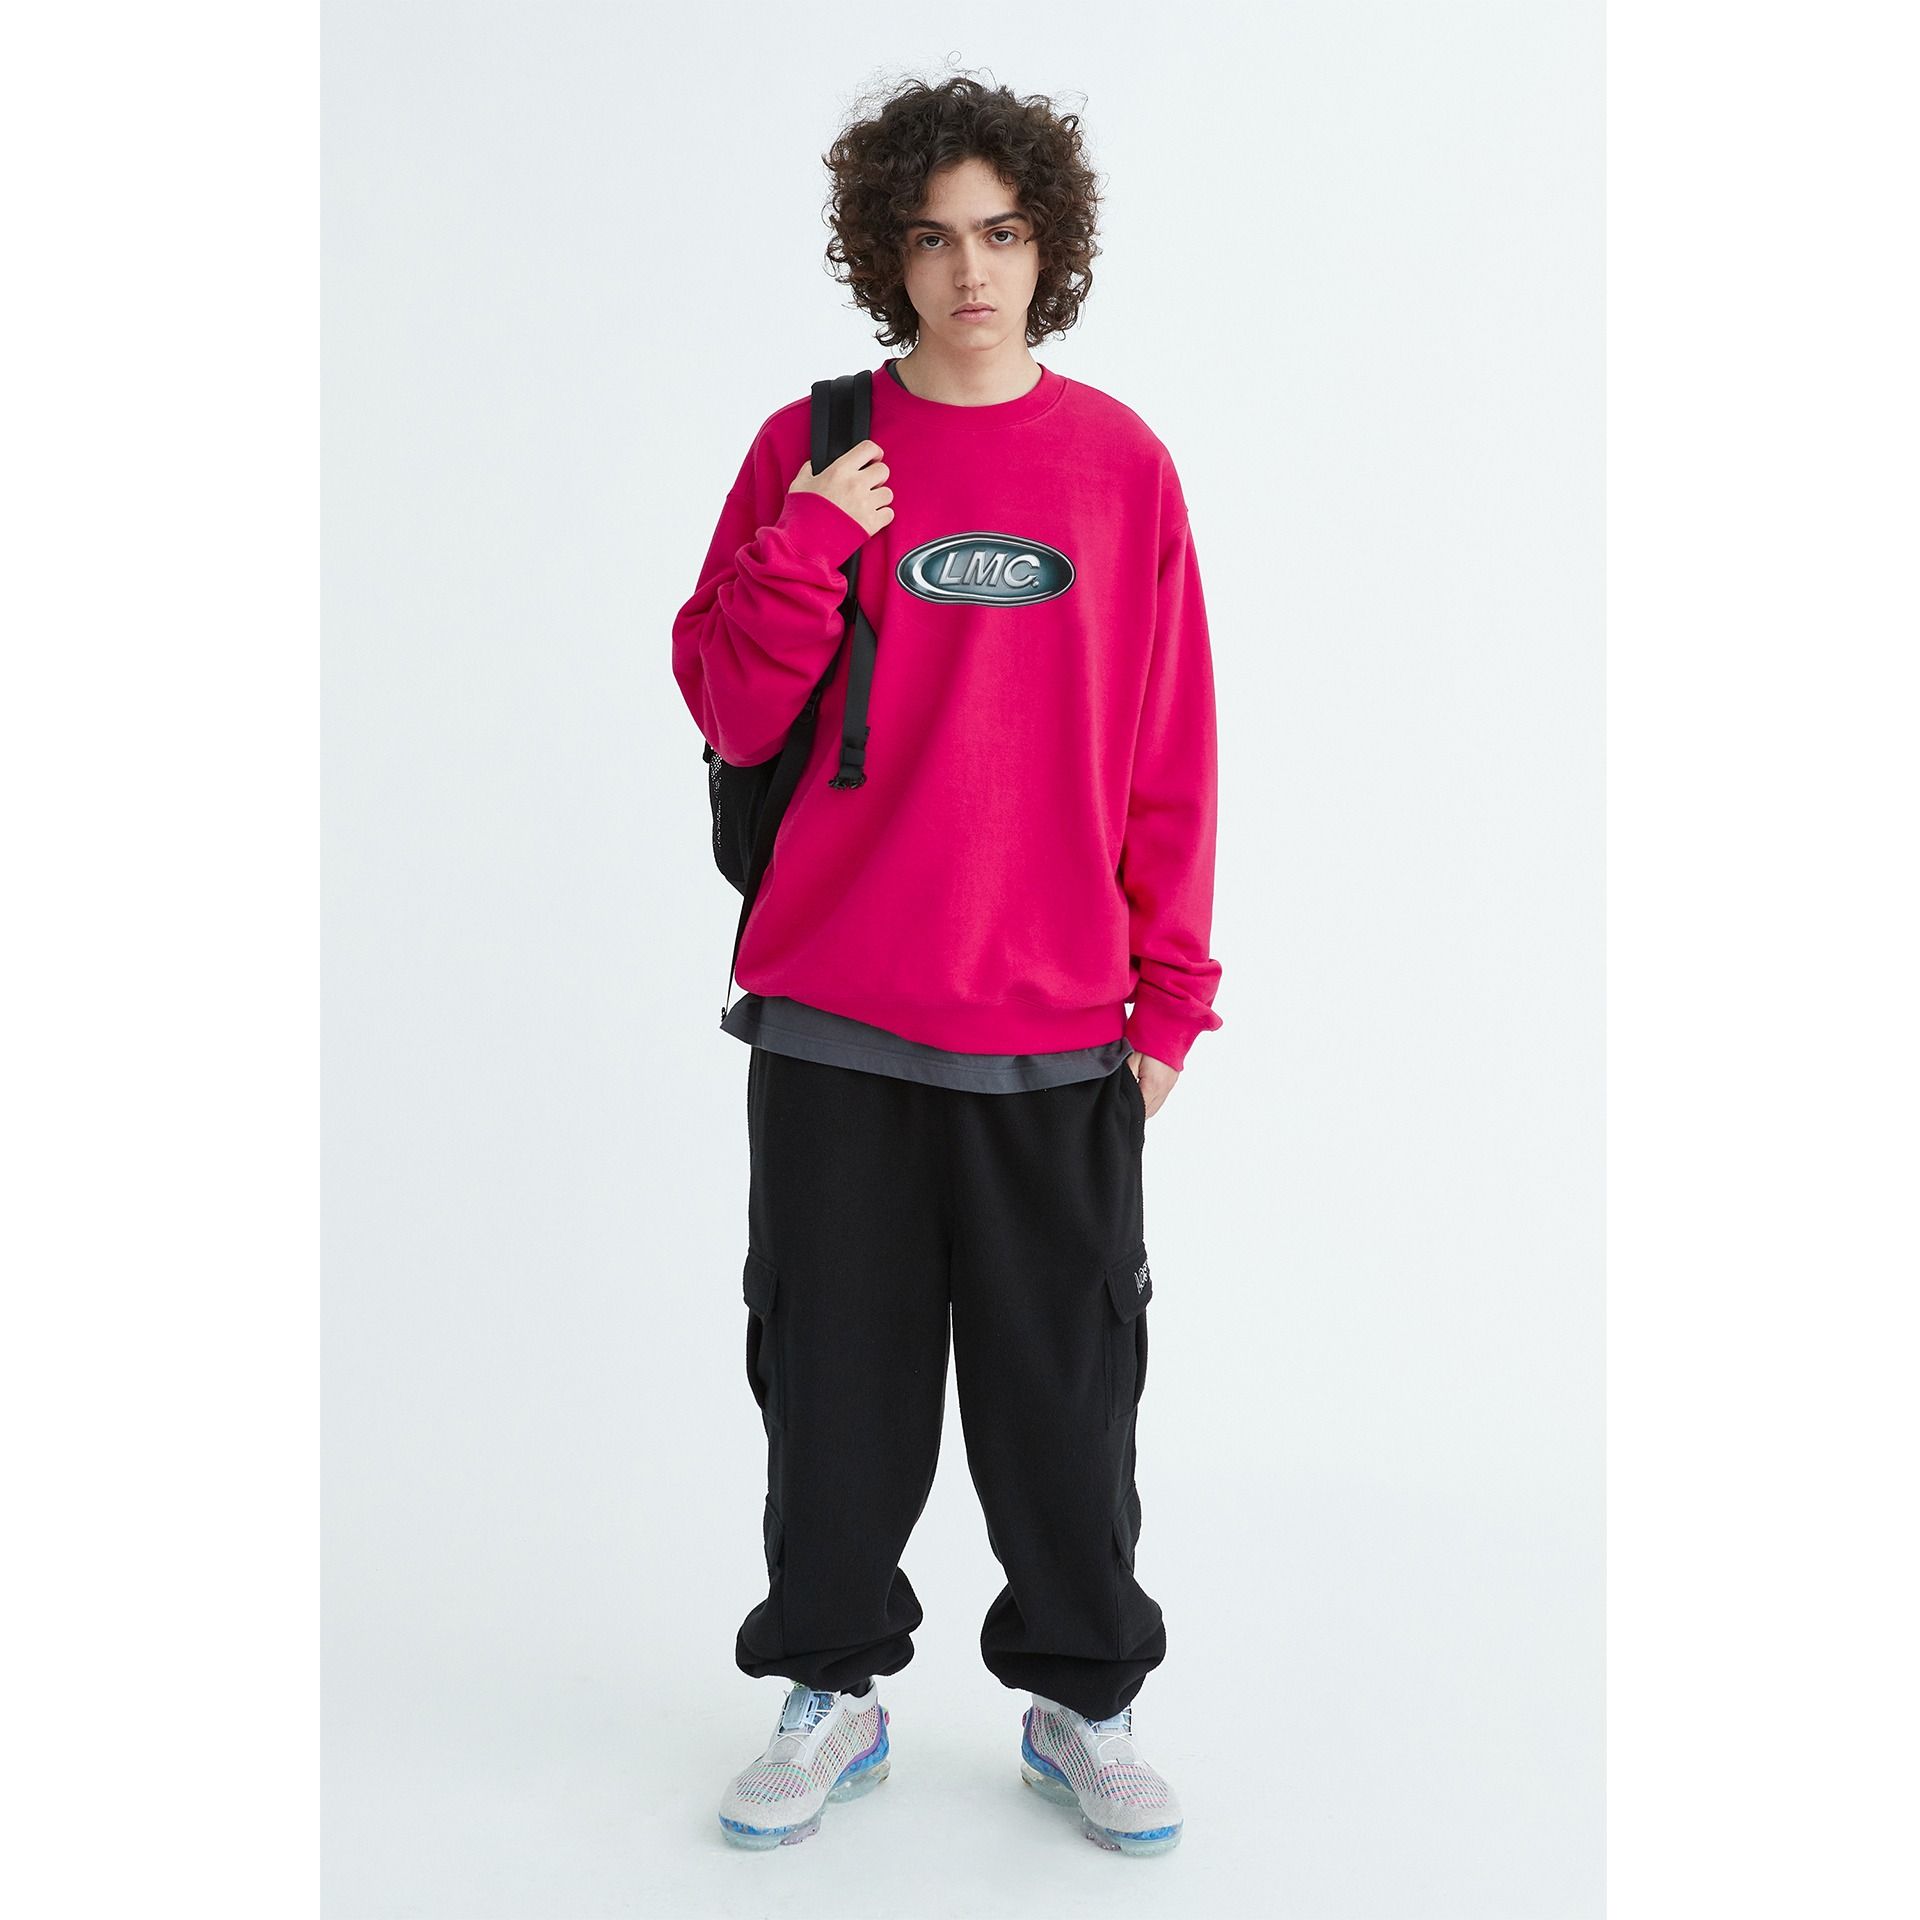 LMC CONVEX CO SWEATSHIRT pink